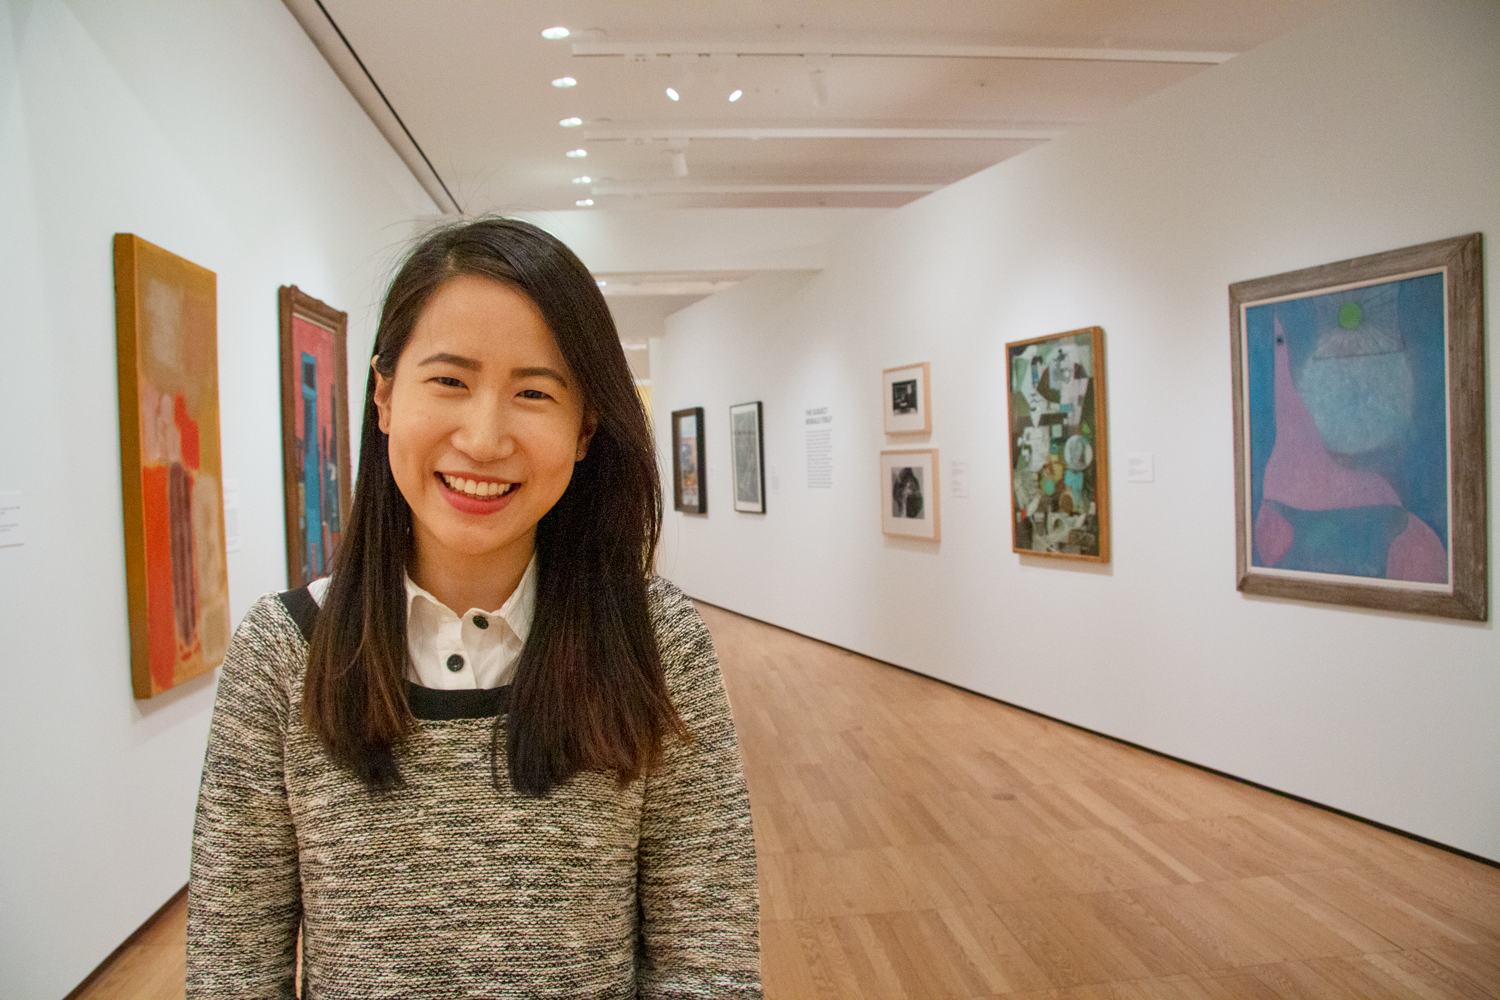 Woman in the foreground with long, black hair, a black/white speckled sweater with a collared shirt underneath. She is smiling and has Asian feature and skin tone. She stands in a hallway with eight modern paintings and photographs on the walls.